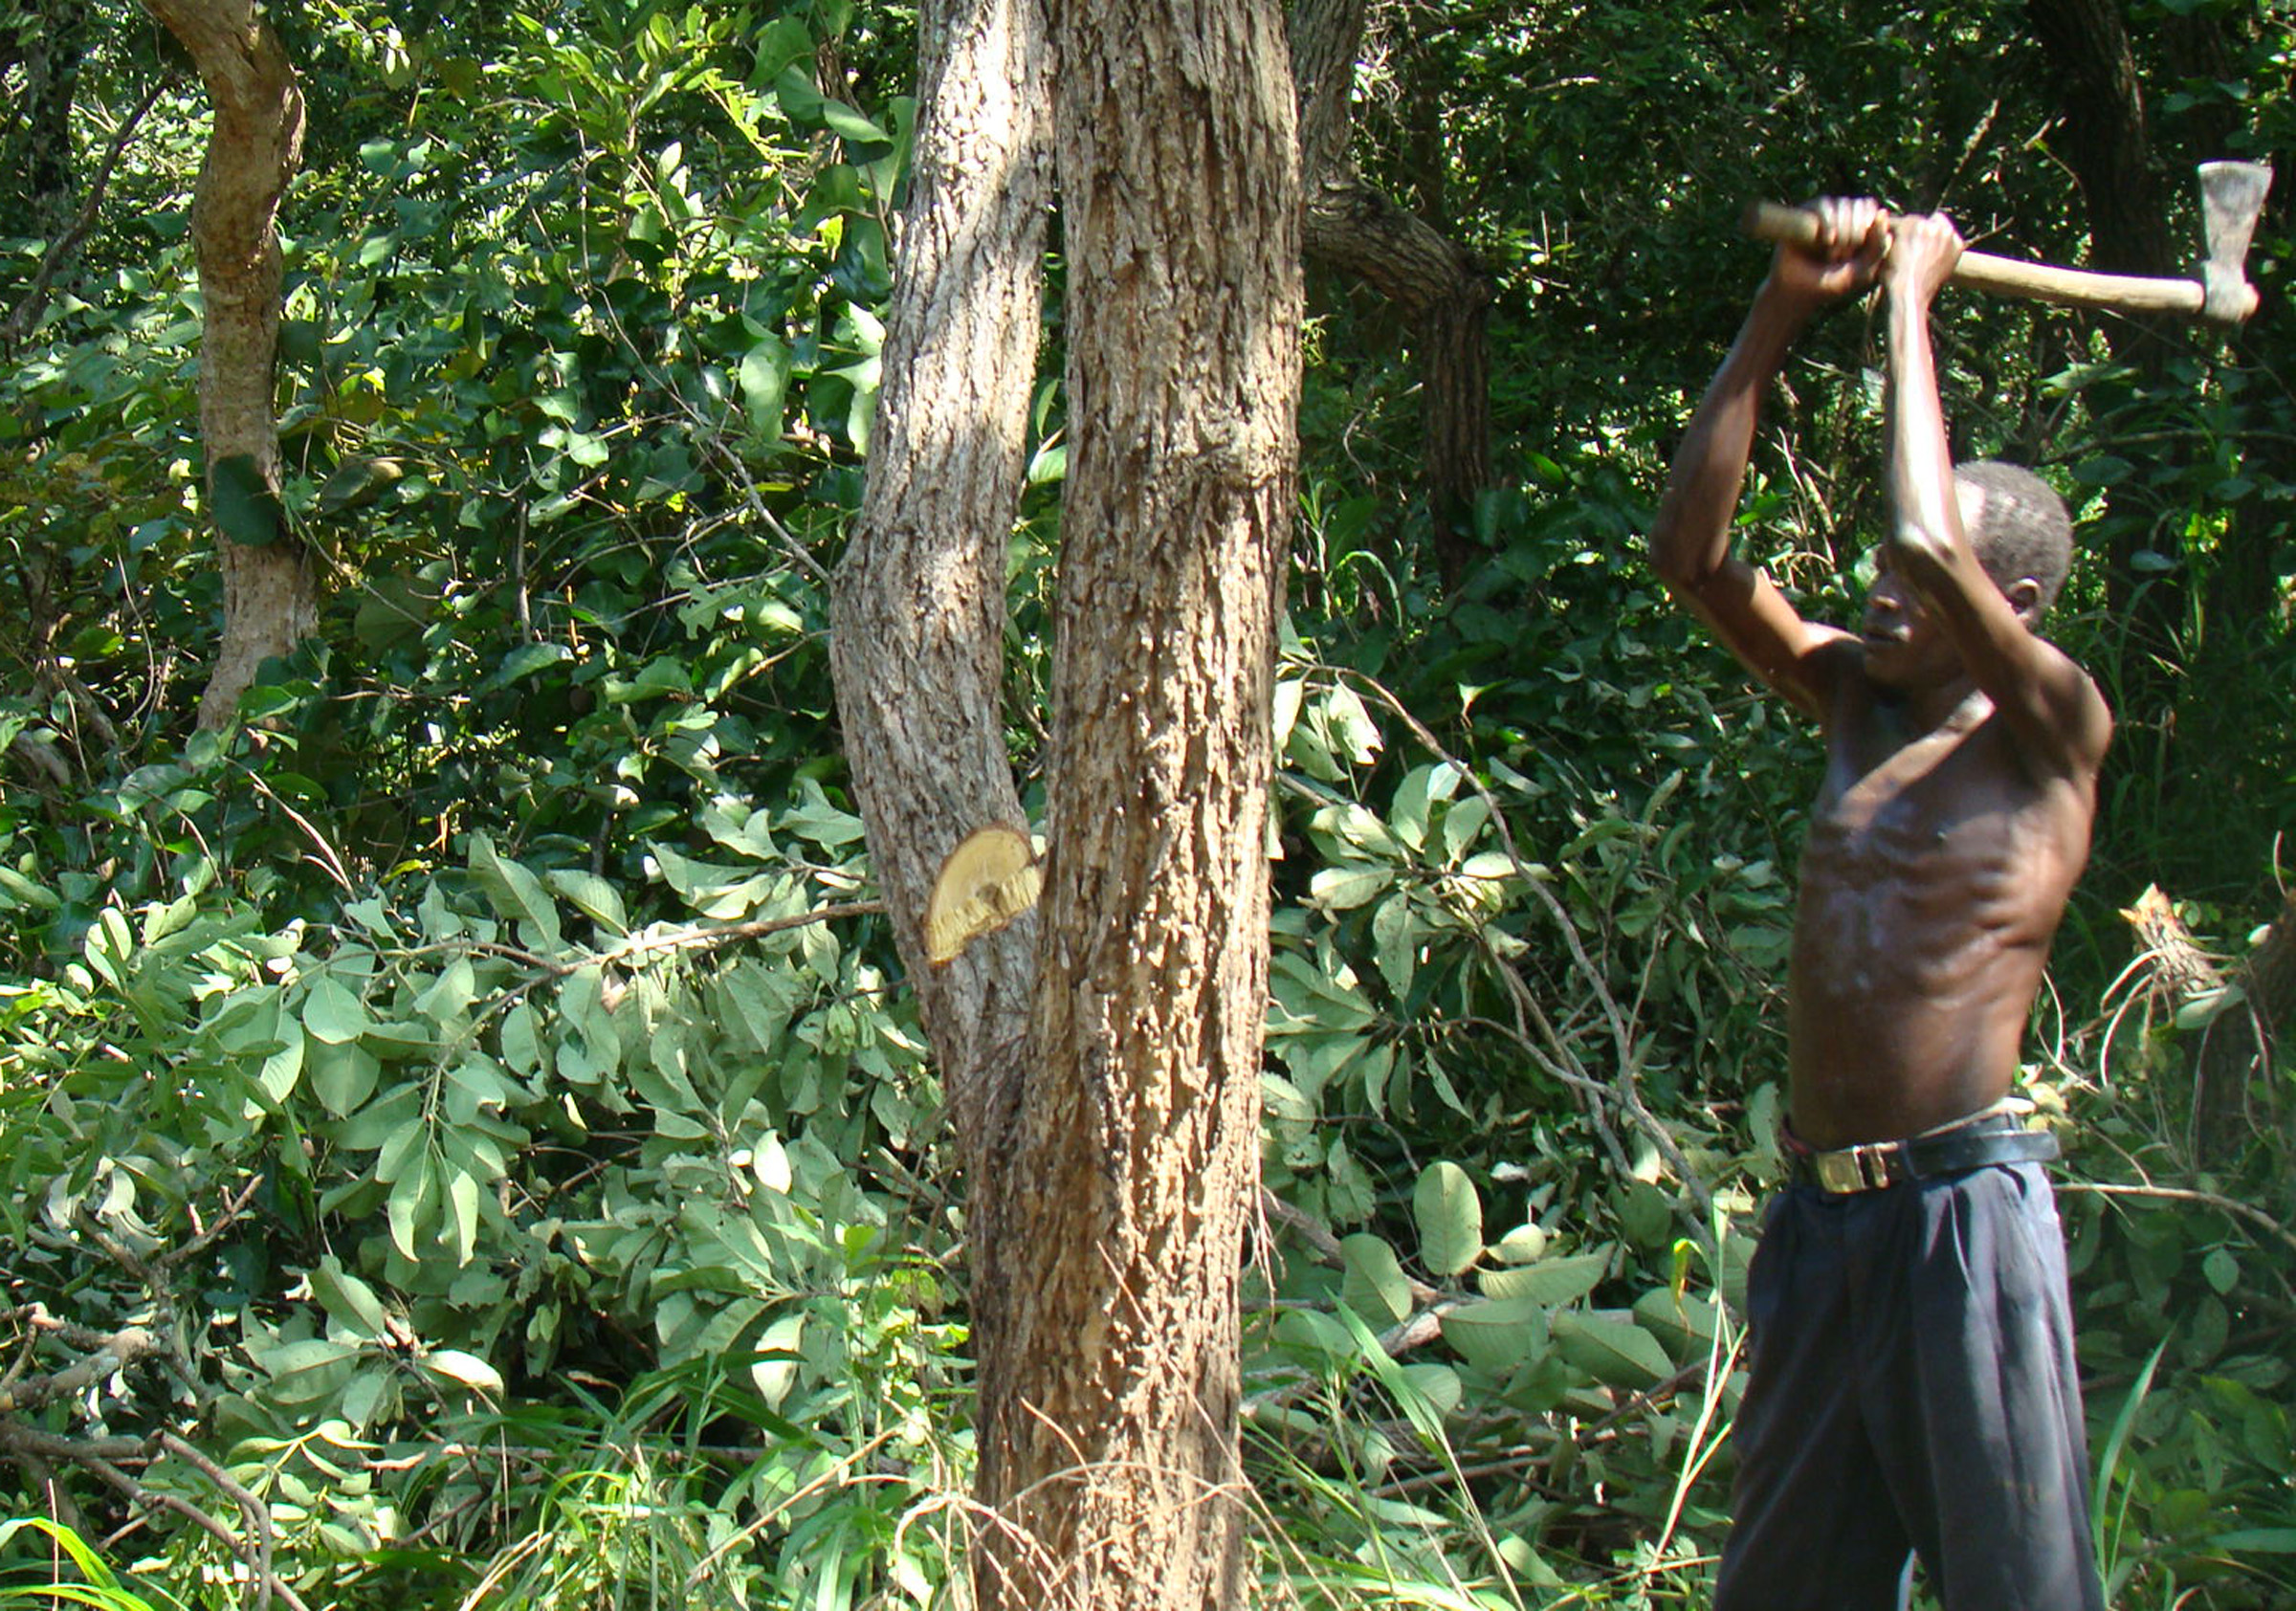 A man cutting down a tree for charcoal burning in Nwoya district. Indiscriminate forest cutting on the rise in northern Uganda